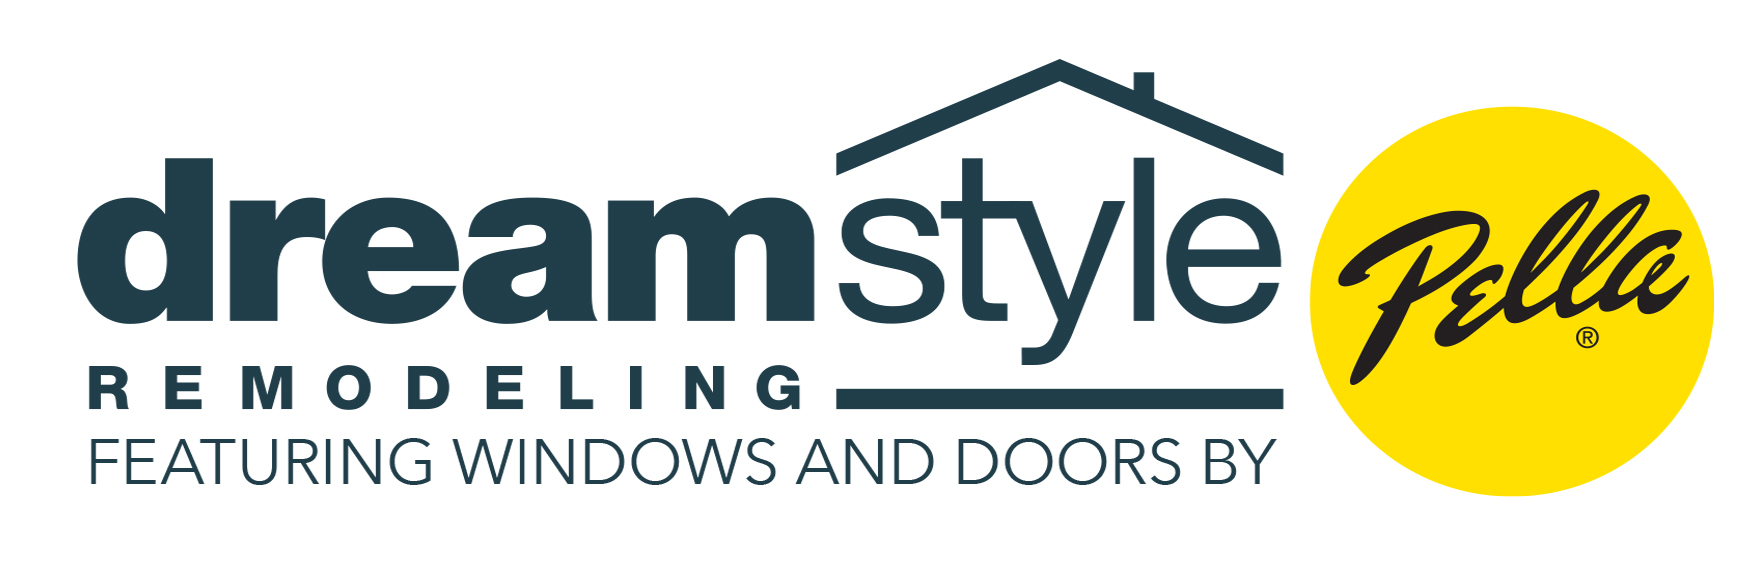 Dreamstyle Remodeling – Windows & Doors logo